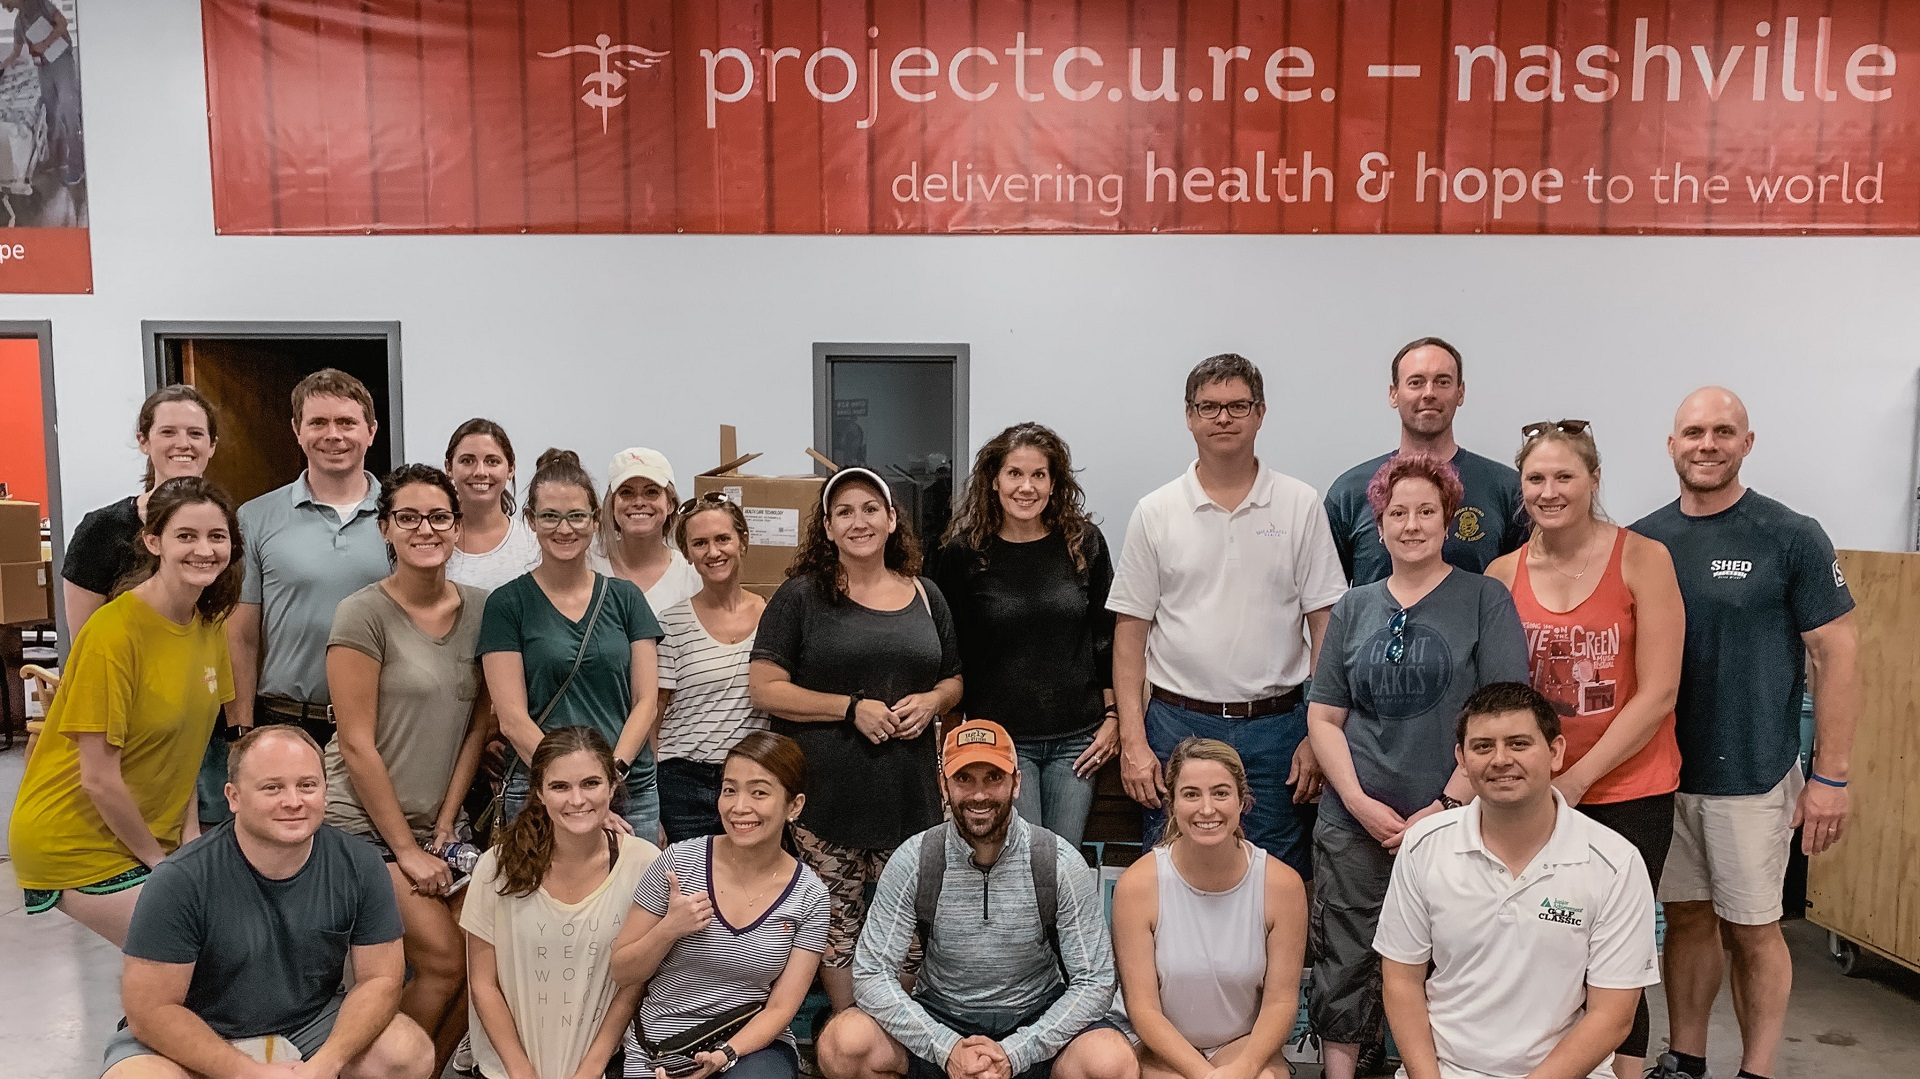 Shearwater Health Volunteers at Project C.U.R.E. to Improve Healthcare Outcomes Globally